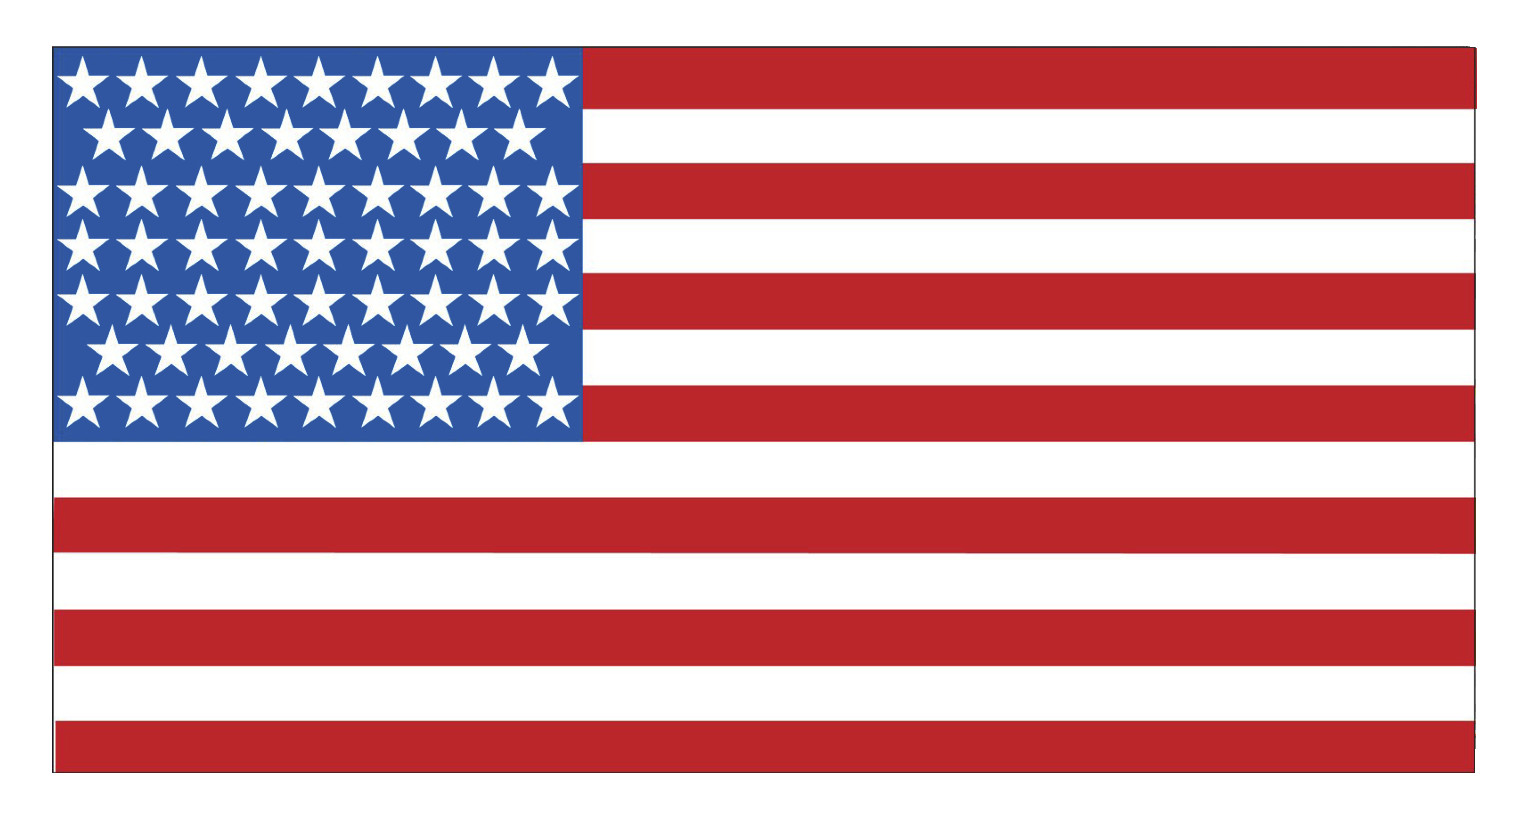 United States Flag Clipart at GetDrawings.com.